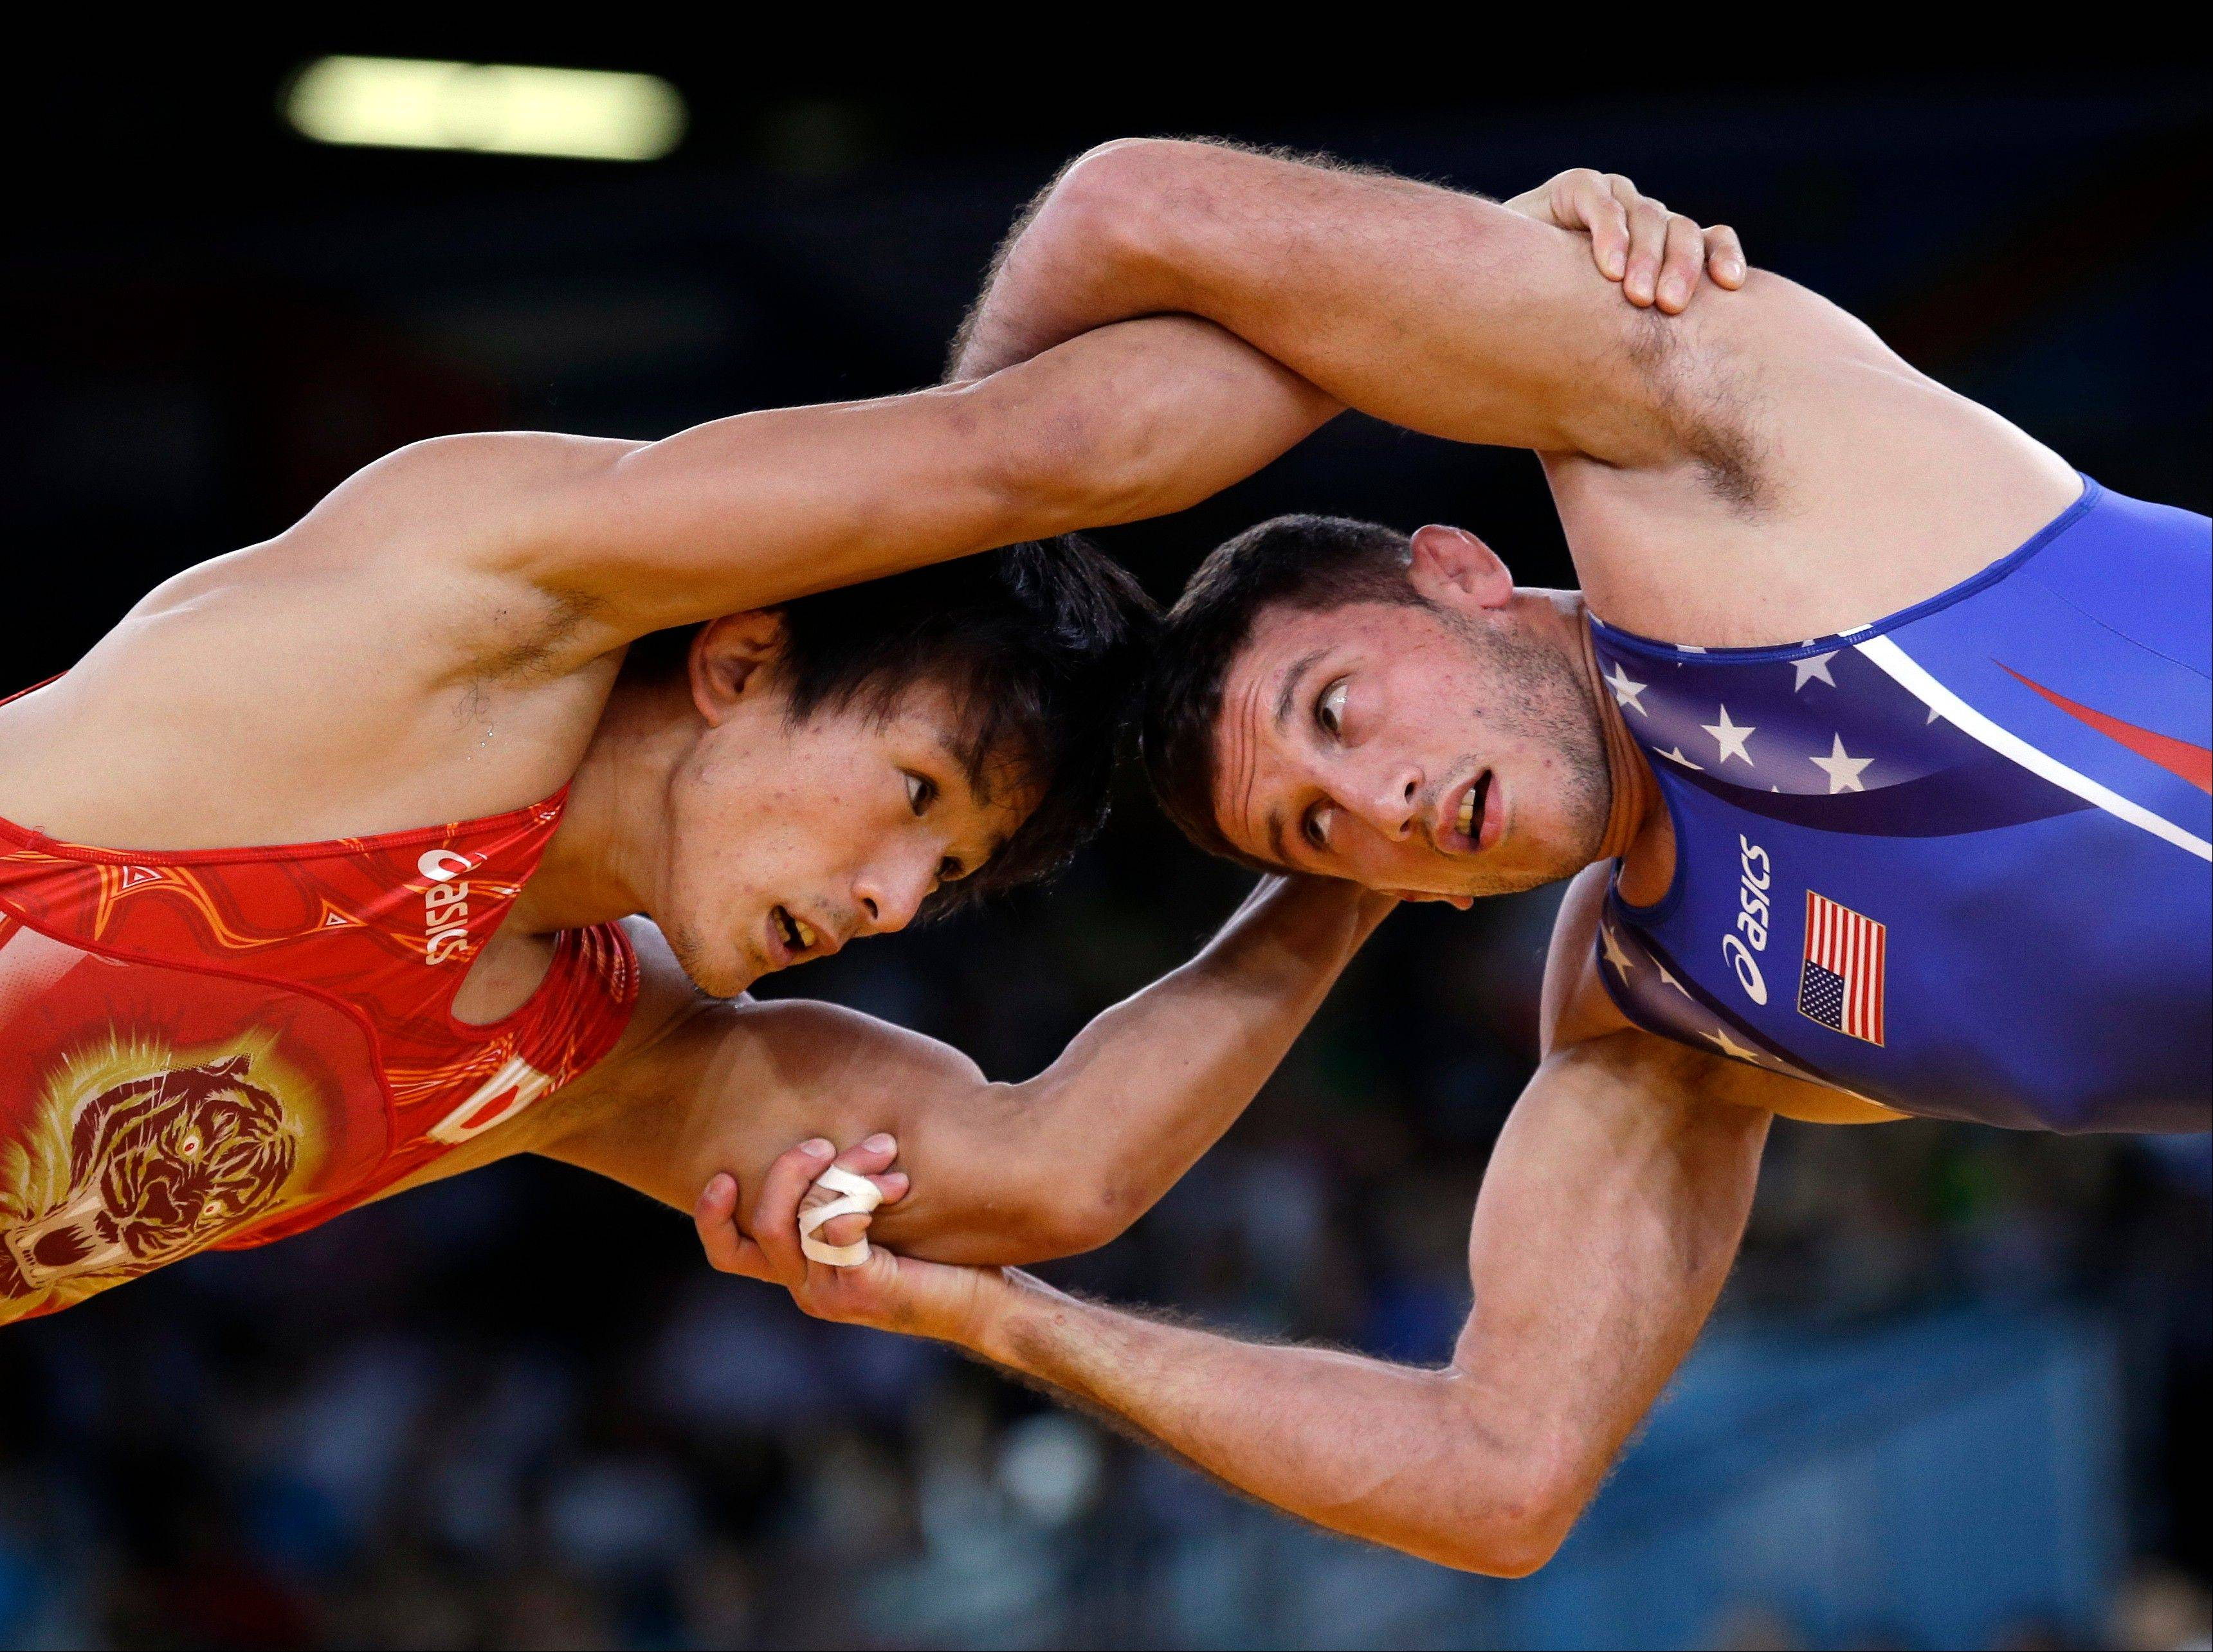 Coleman Scott of the United States competes against Kenichi Yumoto of Japan (in red) for the bronze medal during the men's 60-kg freestyle wrestling competition at the 2012 Summer Olympics, Saturday, Aug. 11, 2012, in London.